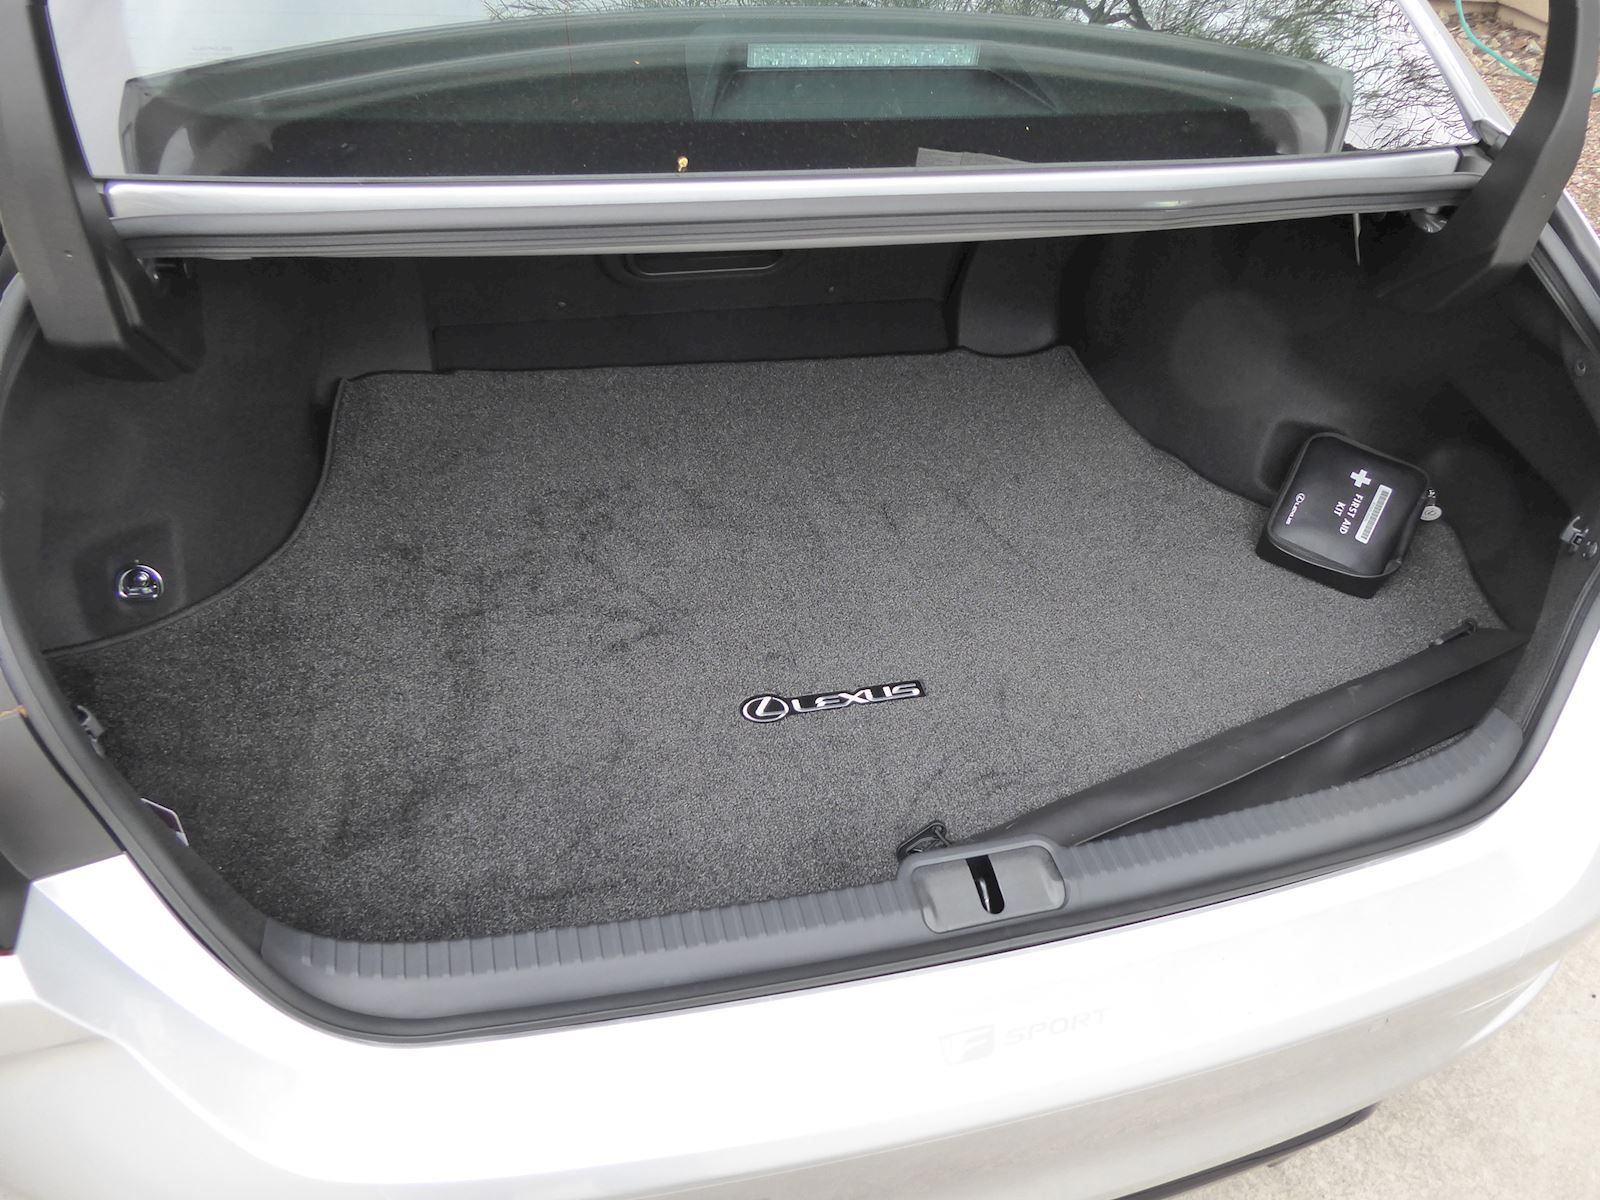 2020 lexus es350 storage and cargo space trunk view